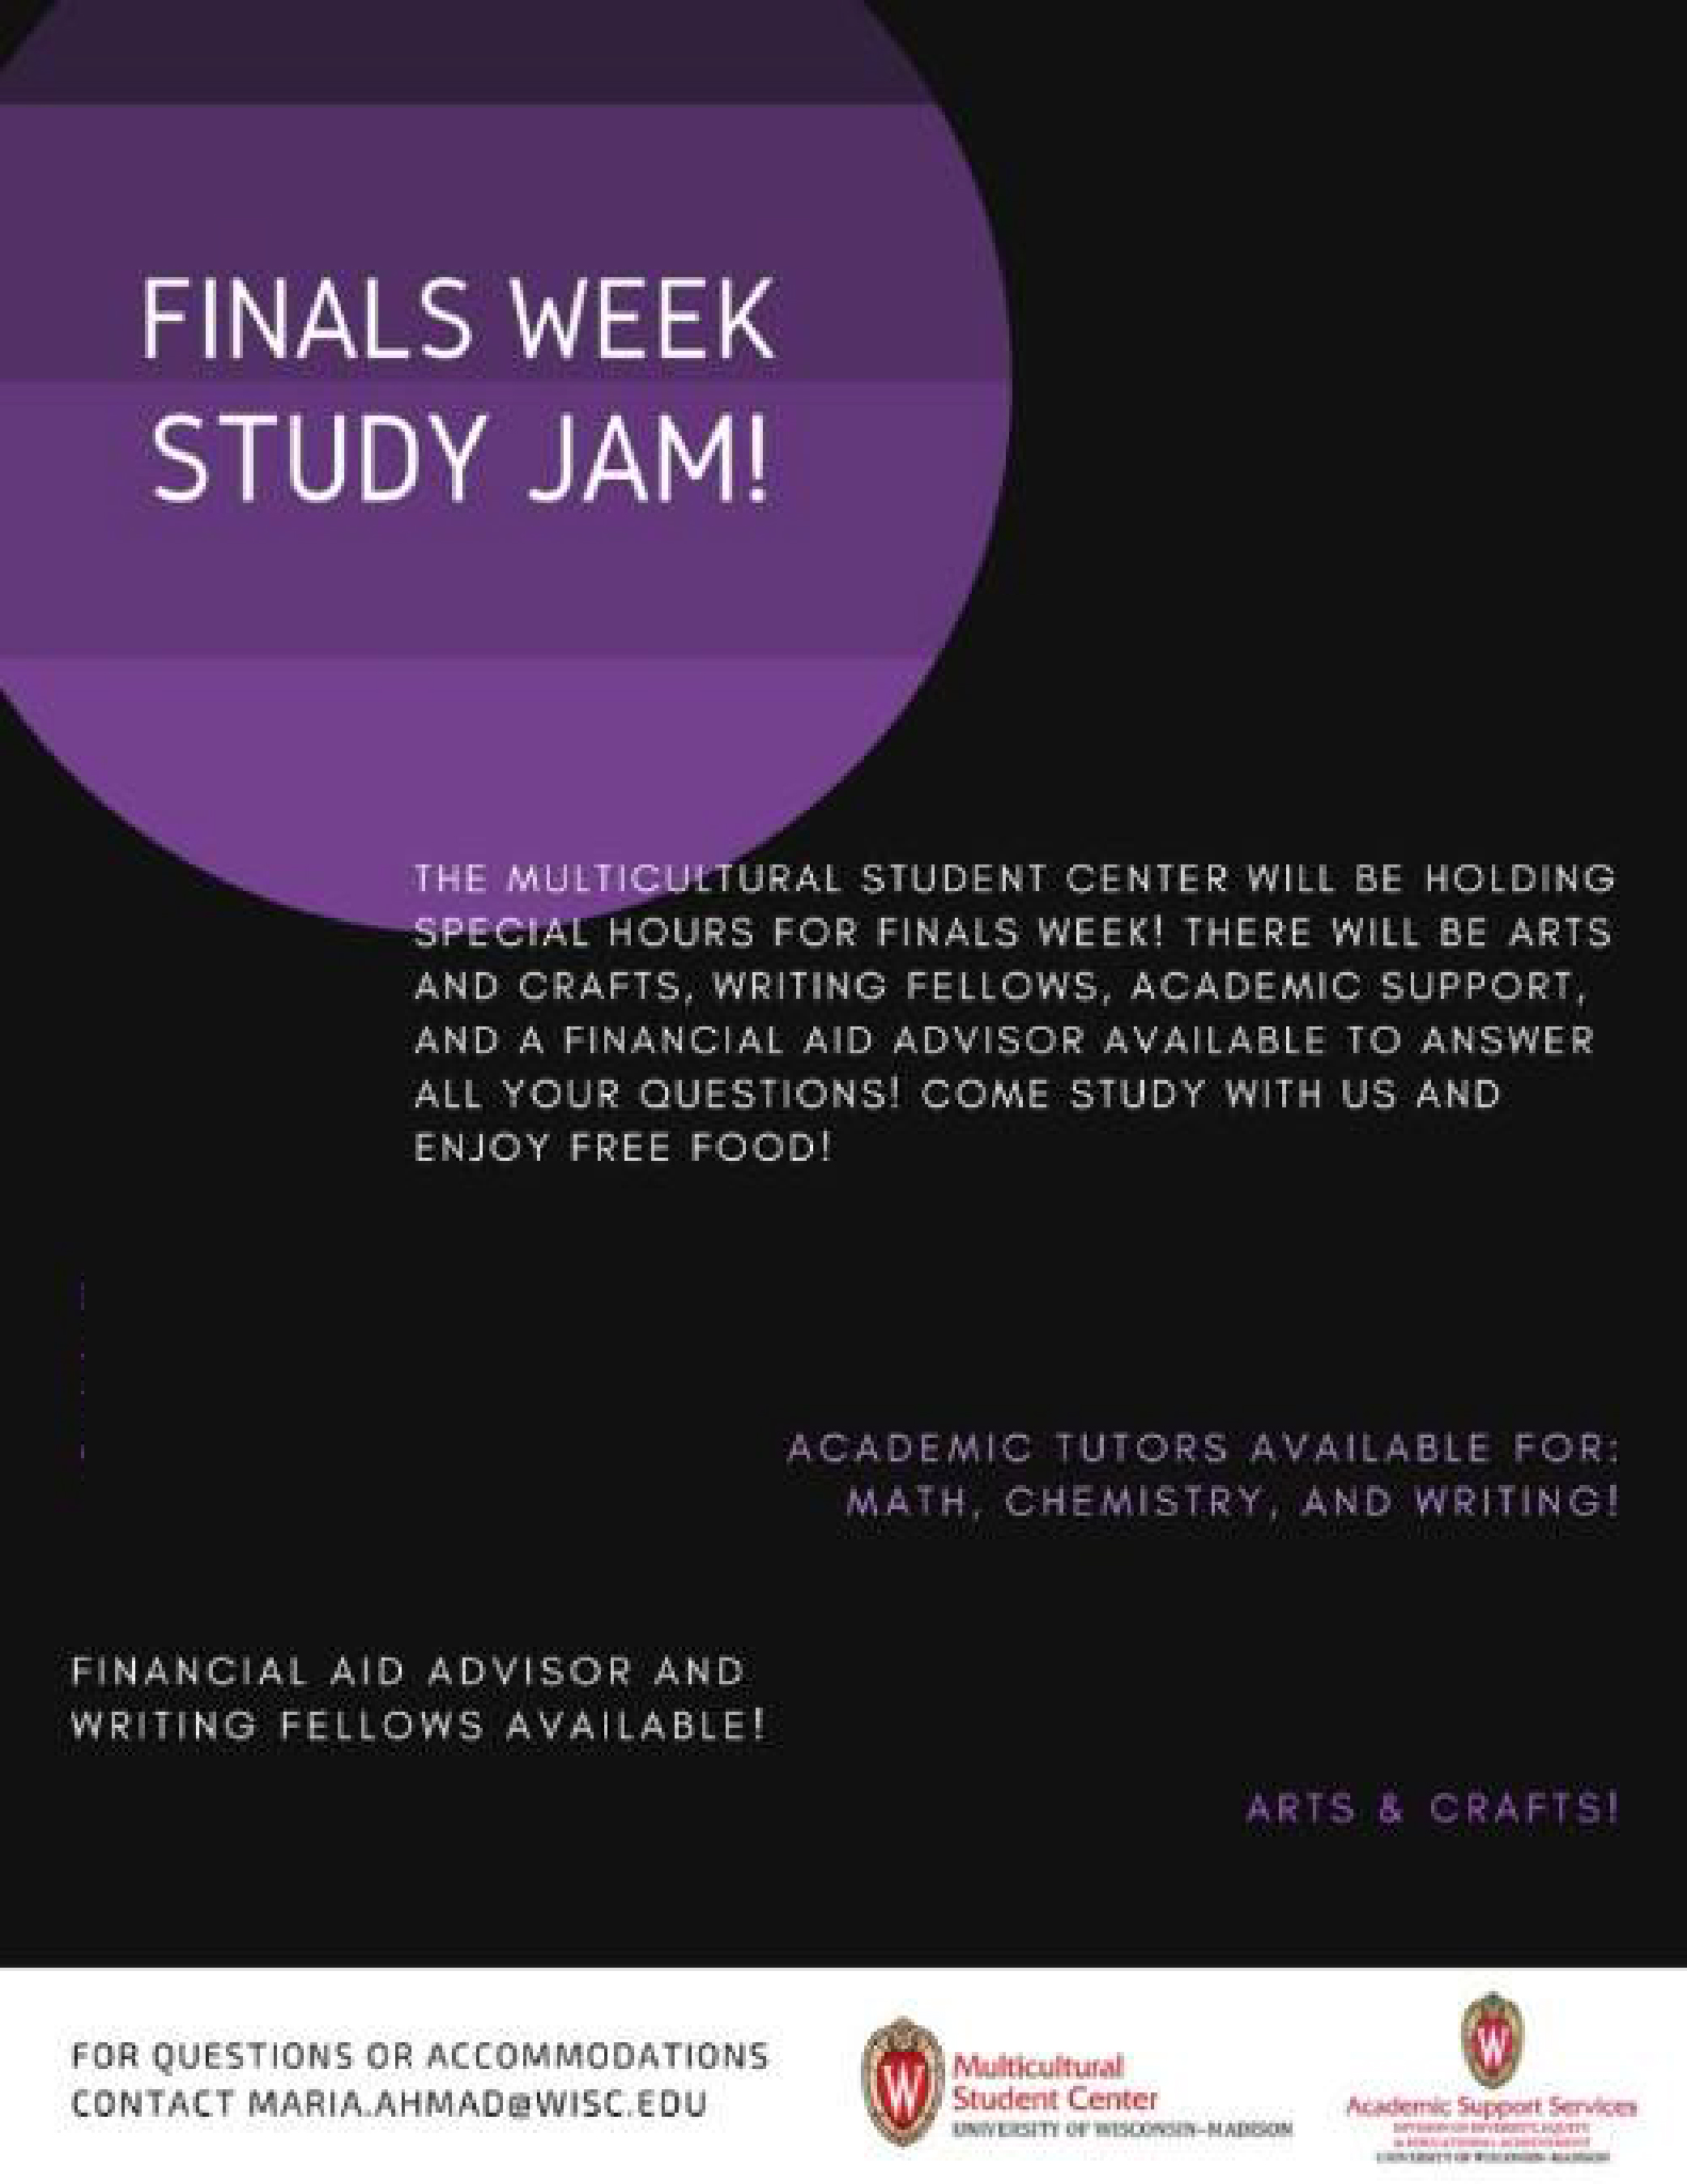 FINALS WEEK STUDY JAM! The Multicultural Student Center will be holding special hours for finals week! There will be arts and crafts, writing fellows, academic support, and a financial aid advisor available to answer all your questions! Come study with us and enjoy free food!